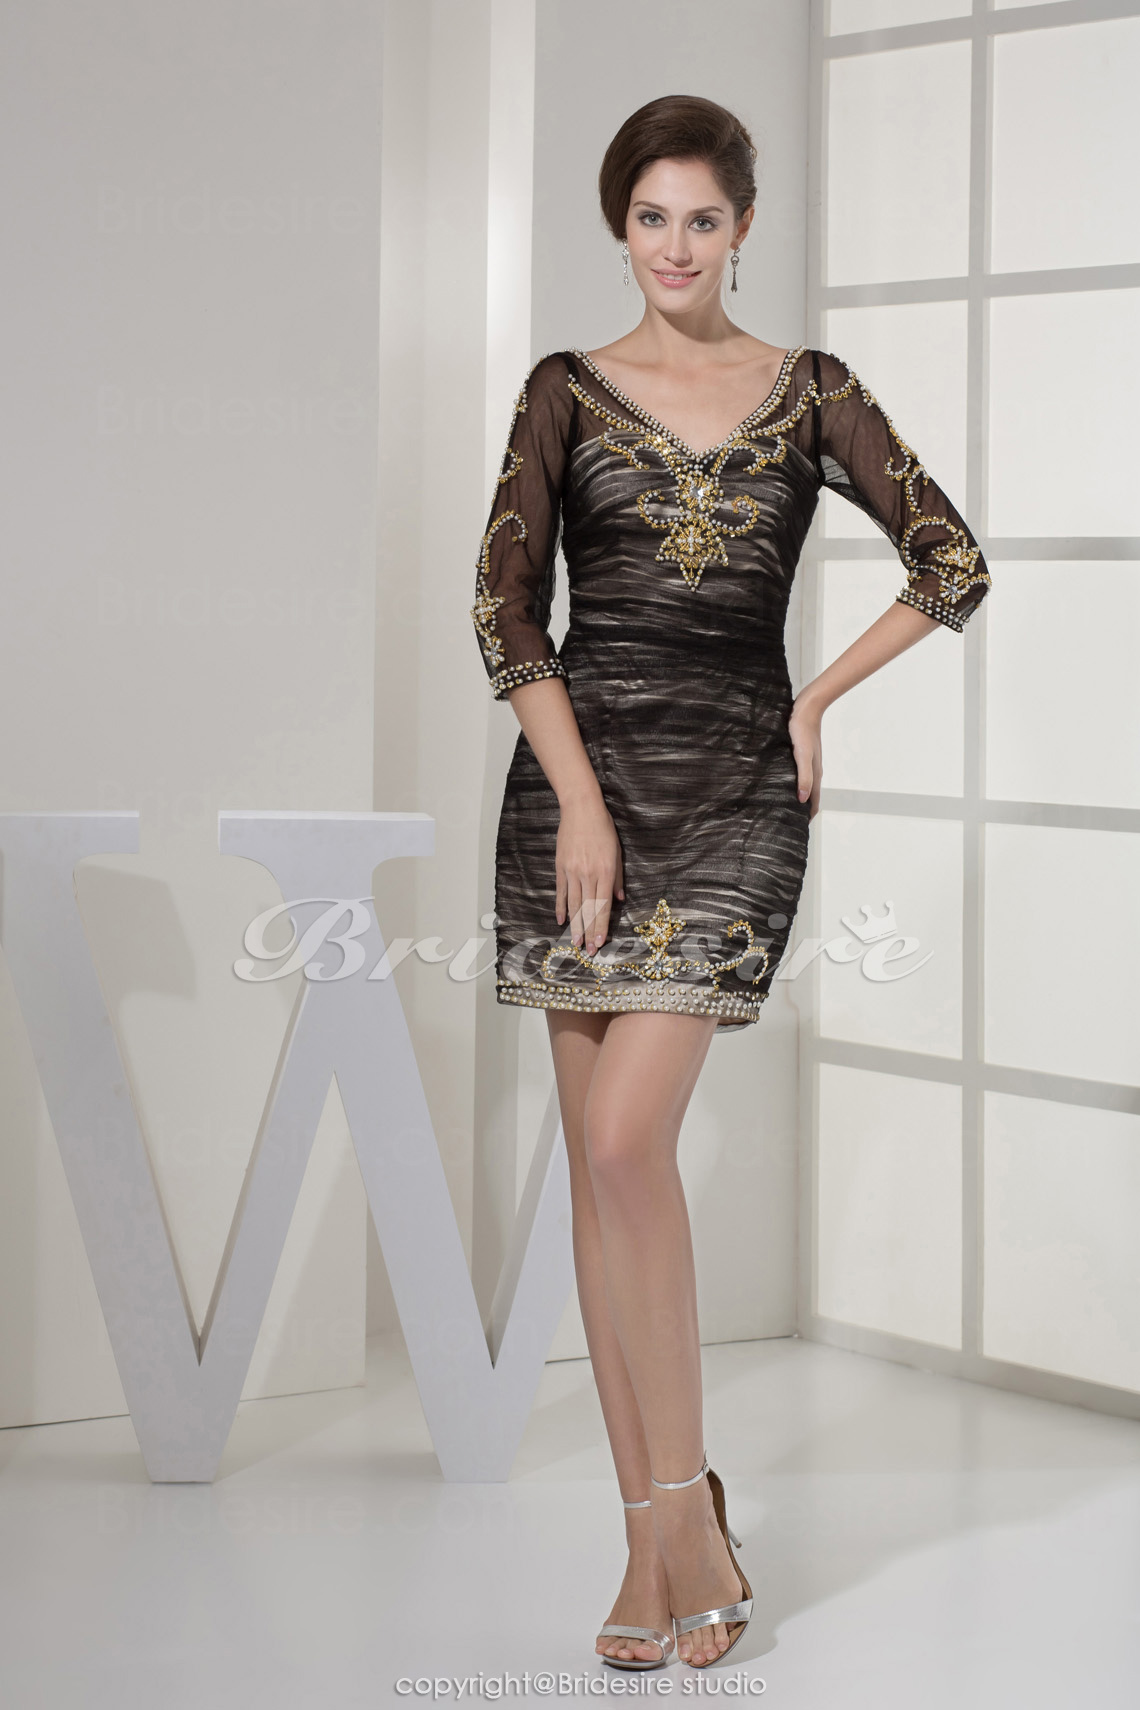 Sheath/Column V-neck Short/Mini 3/4 Length Sleeve Chiffon Satin Mother of the Bride Dress